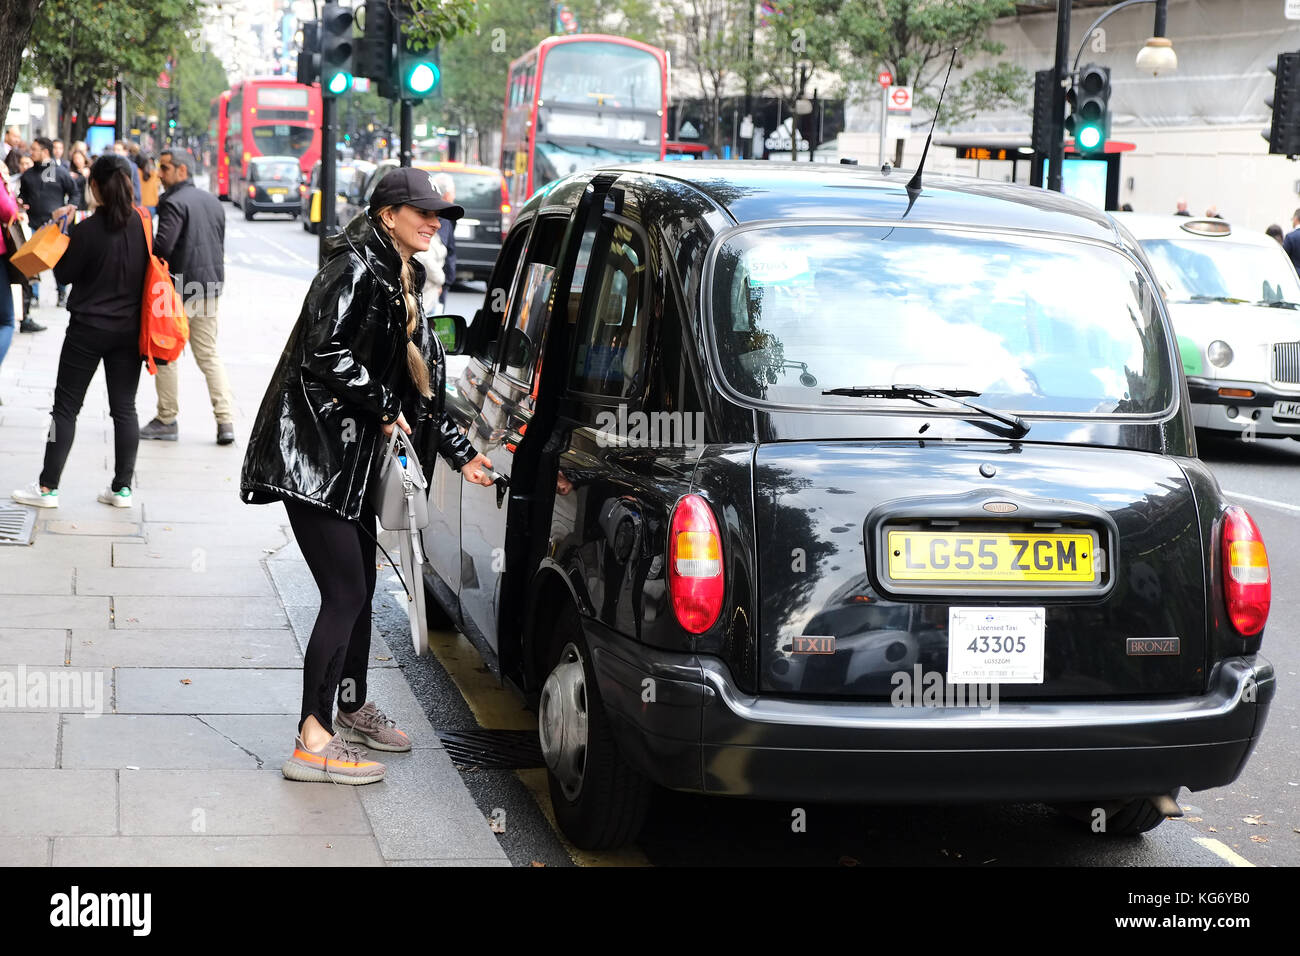 Hailing a traditional Black Cab in London outside Selfridges on Oxford Street Central London UK Stock Photo